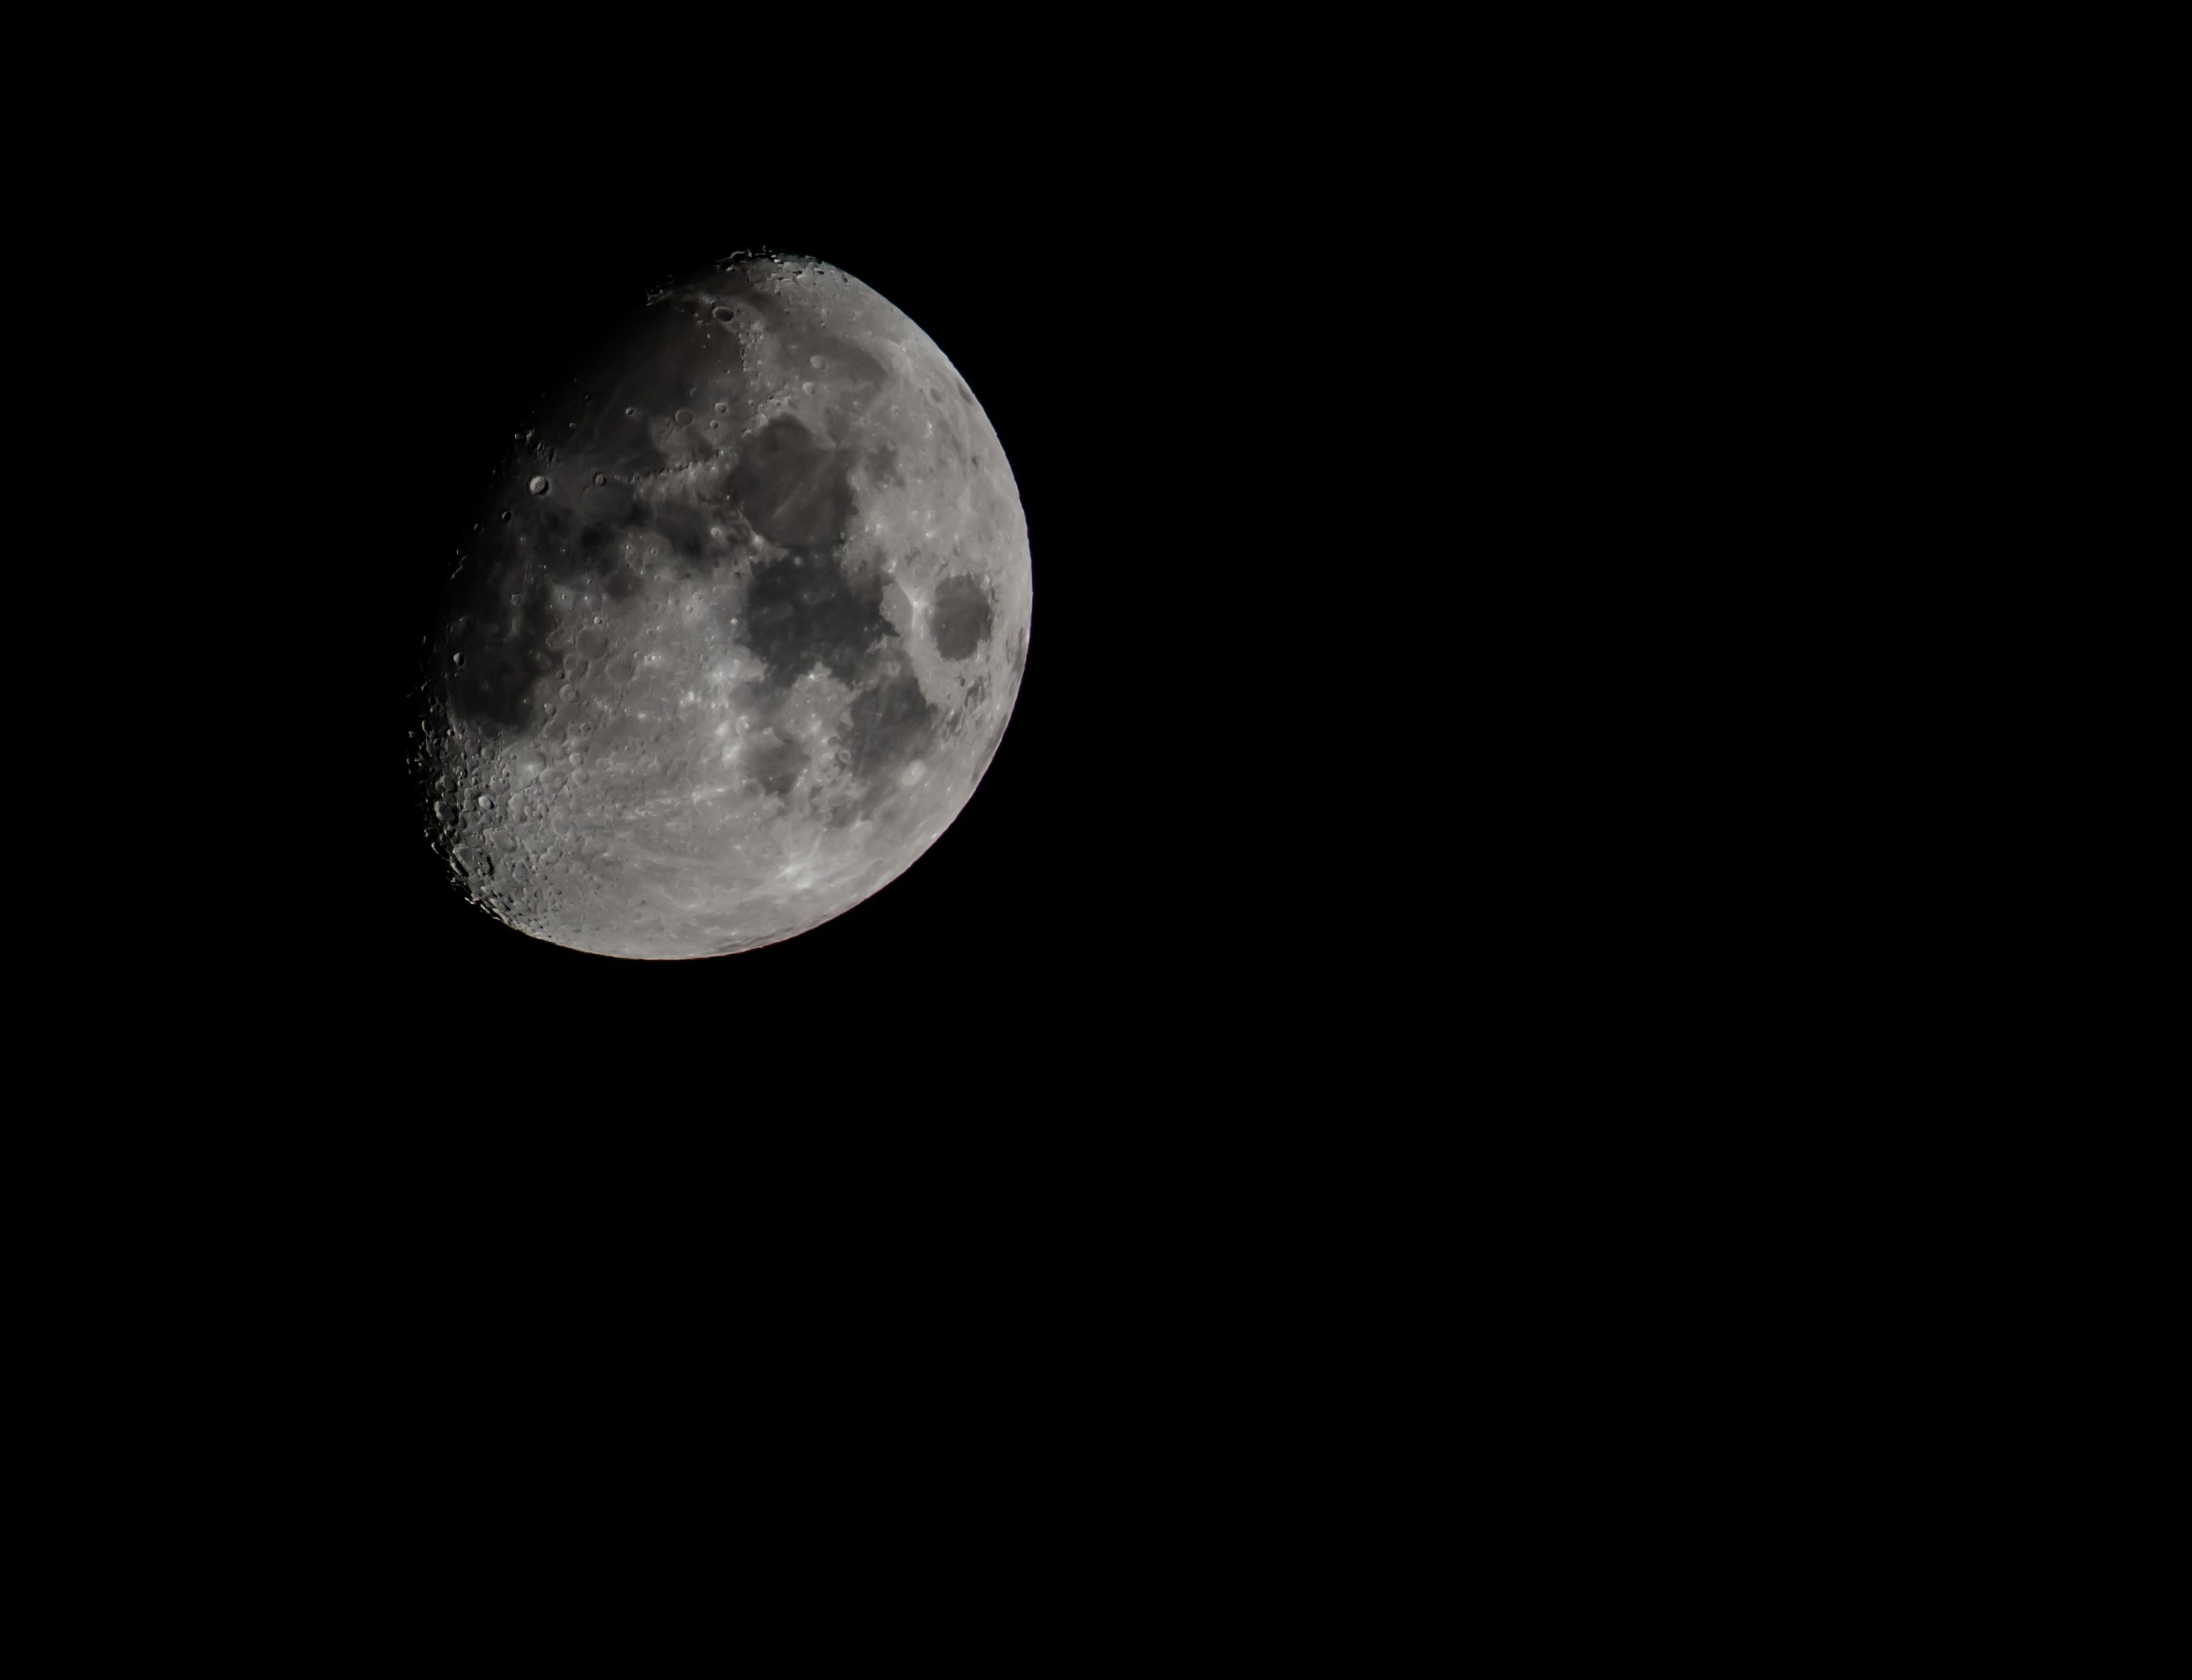 Close up of the moon and its dark spots shot from Knoxville